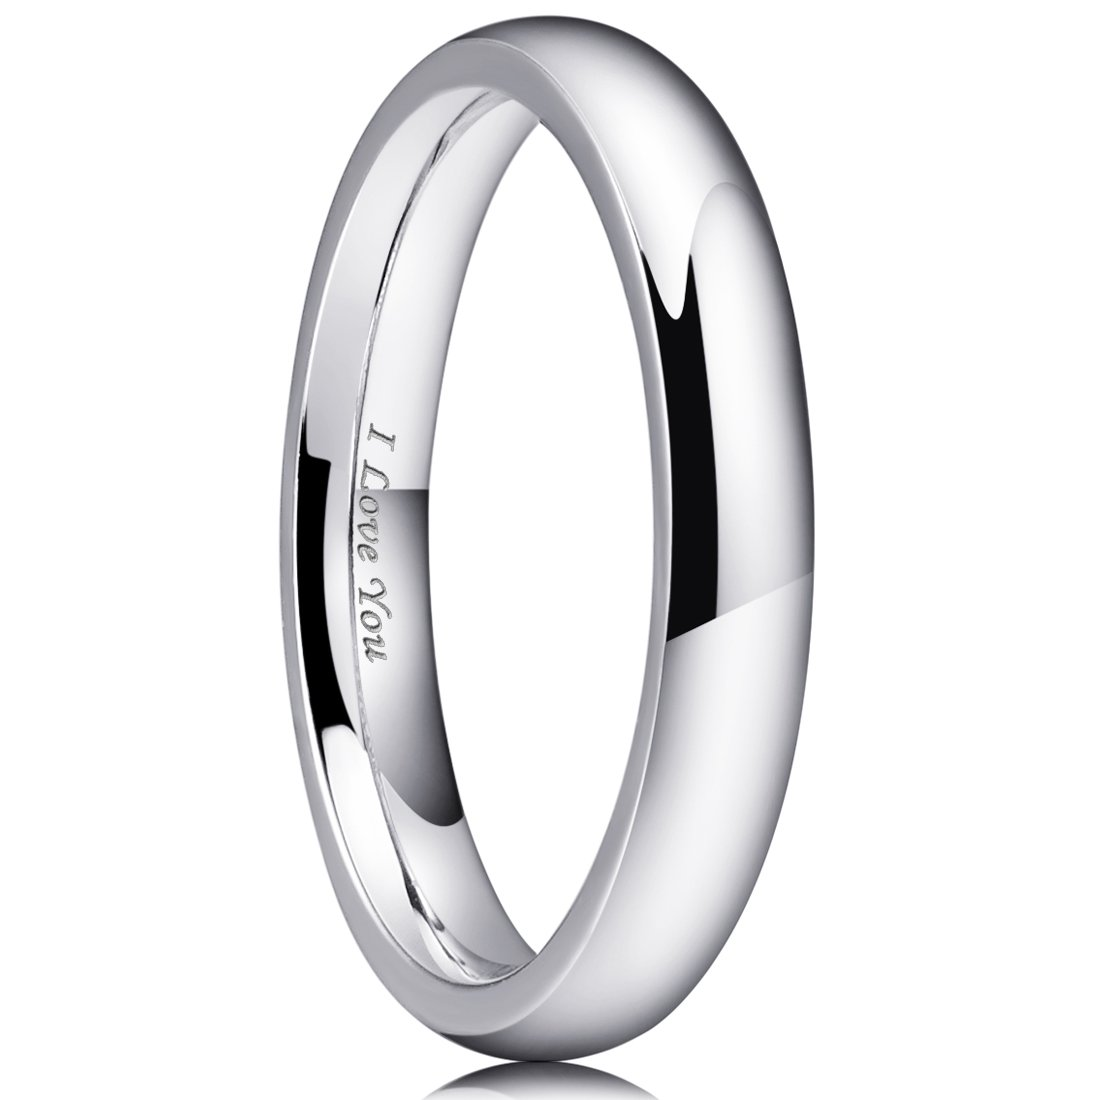 King Will 3mm Stainless Steel Ring Original Color Full High Polished with Laser Etched I Love You(8.5)